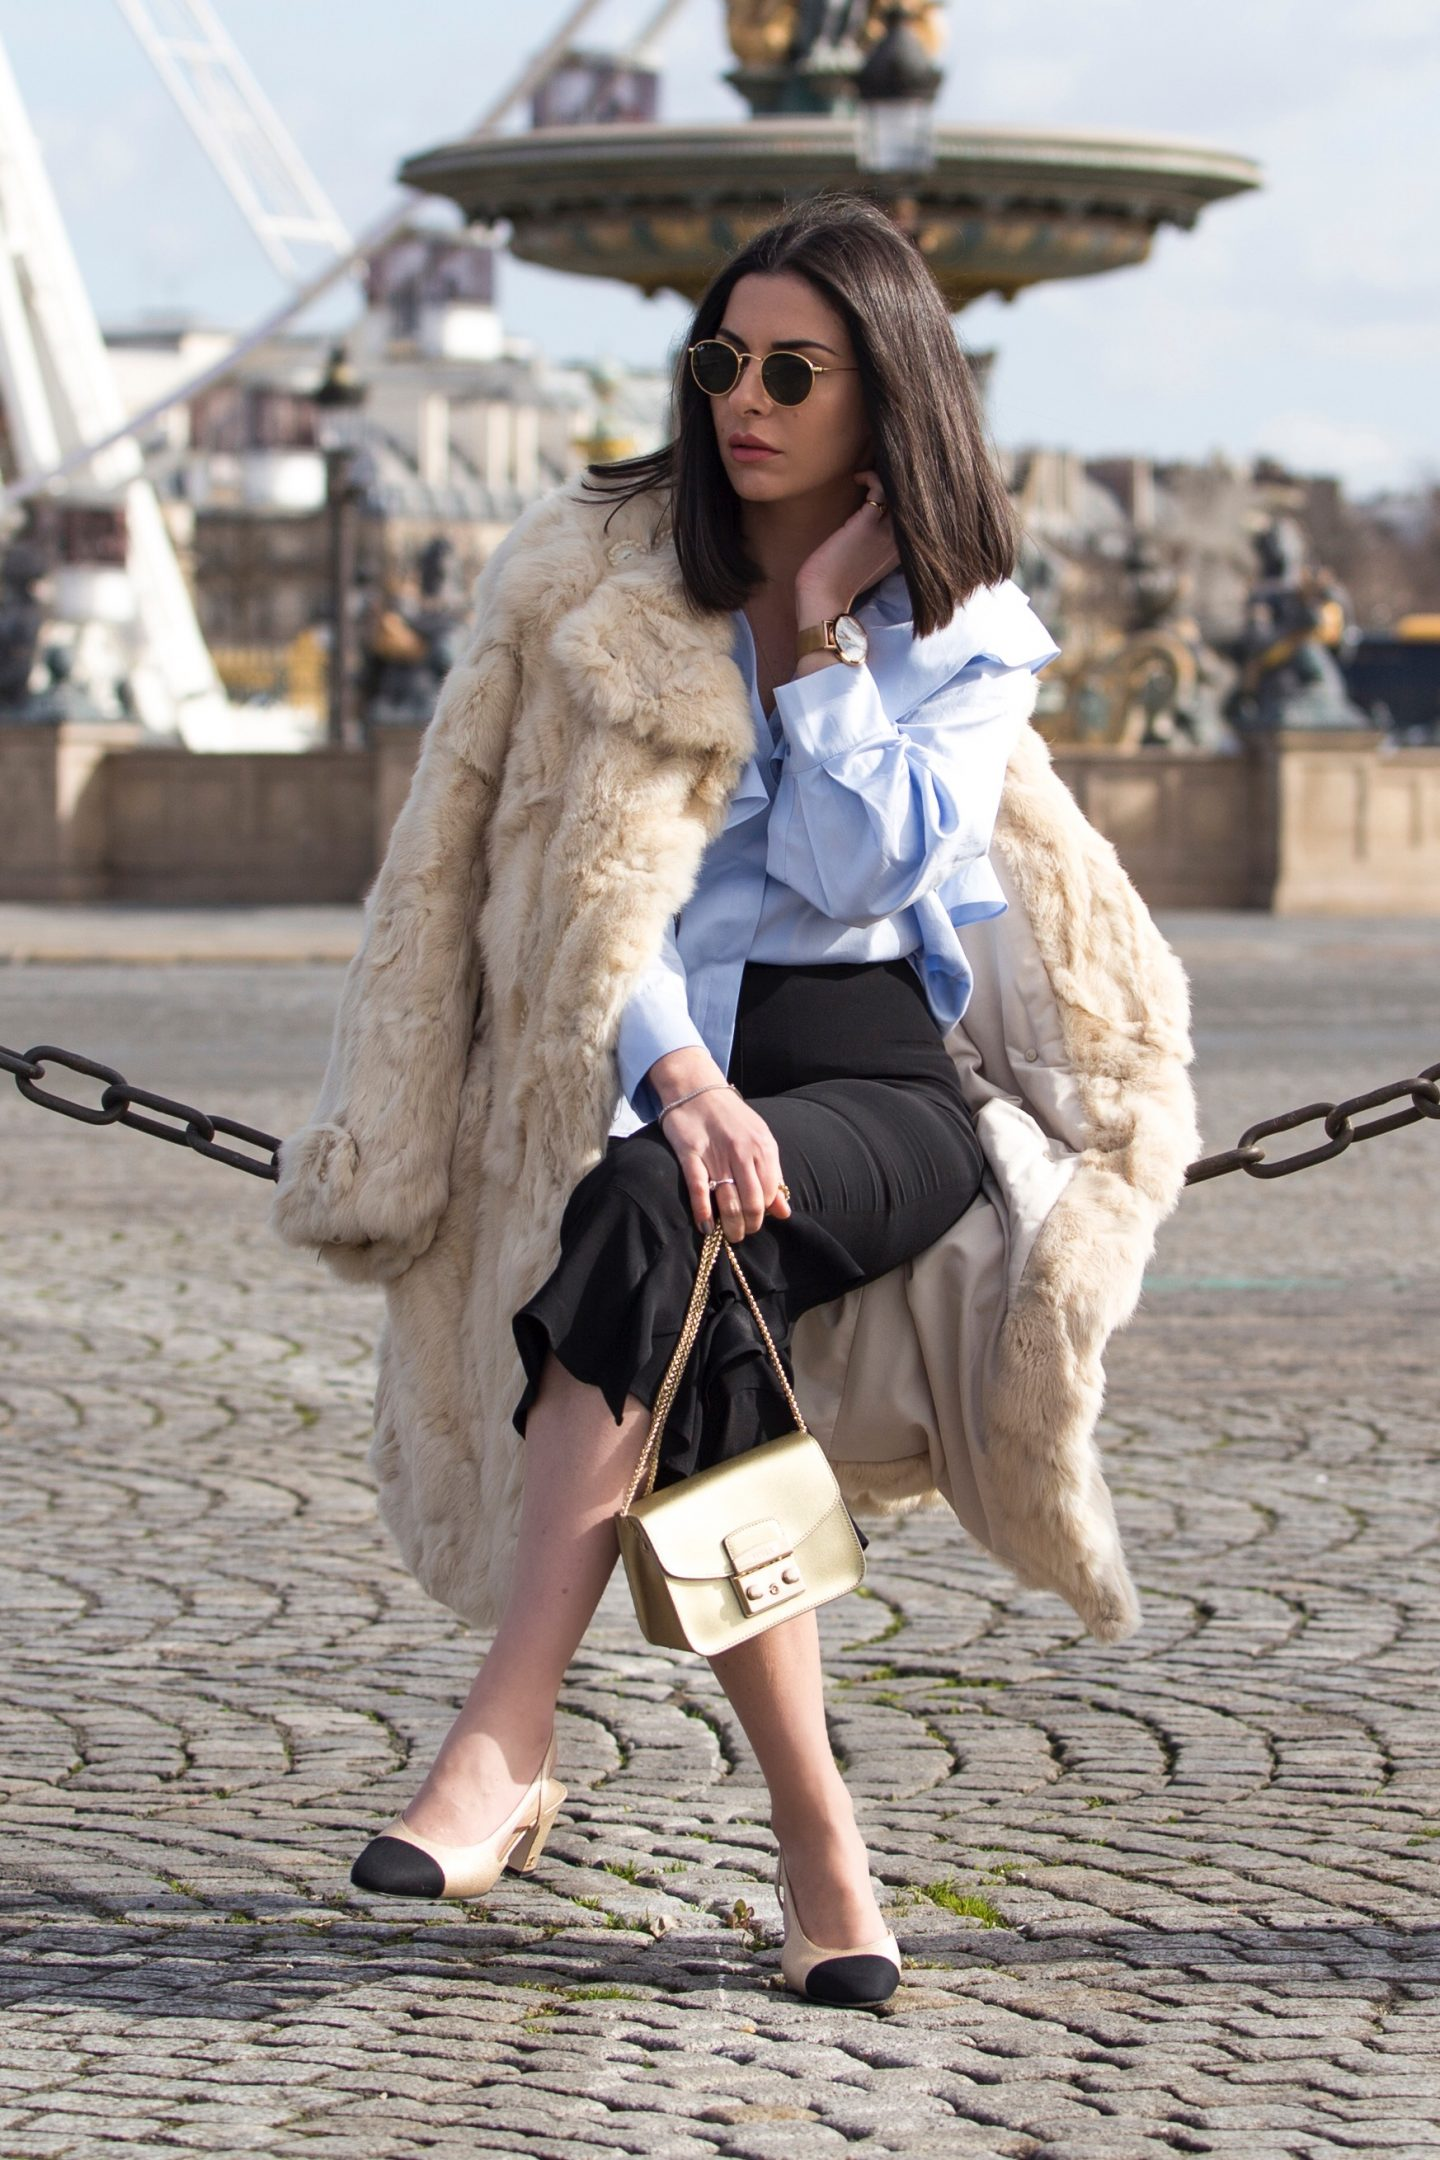 Ruffled Blouse & Chanel Slingbacks For Paris Fashion Week